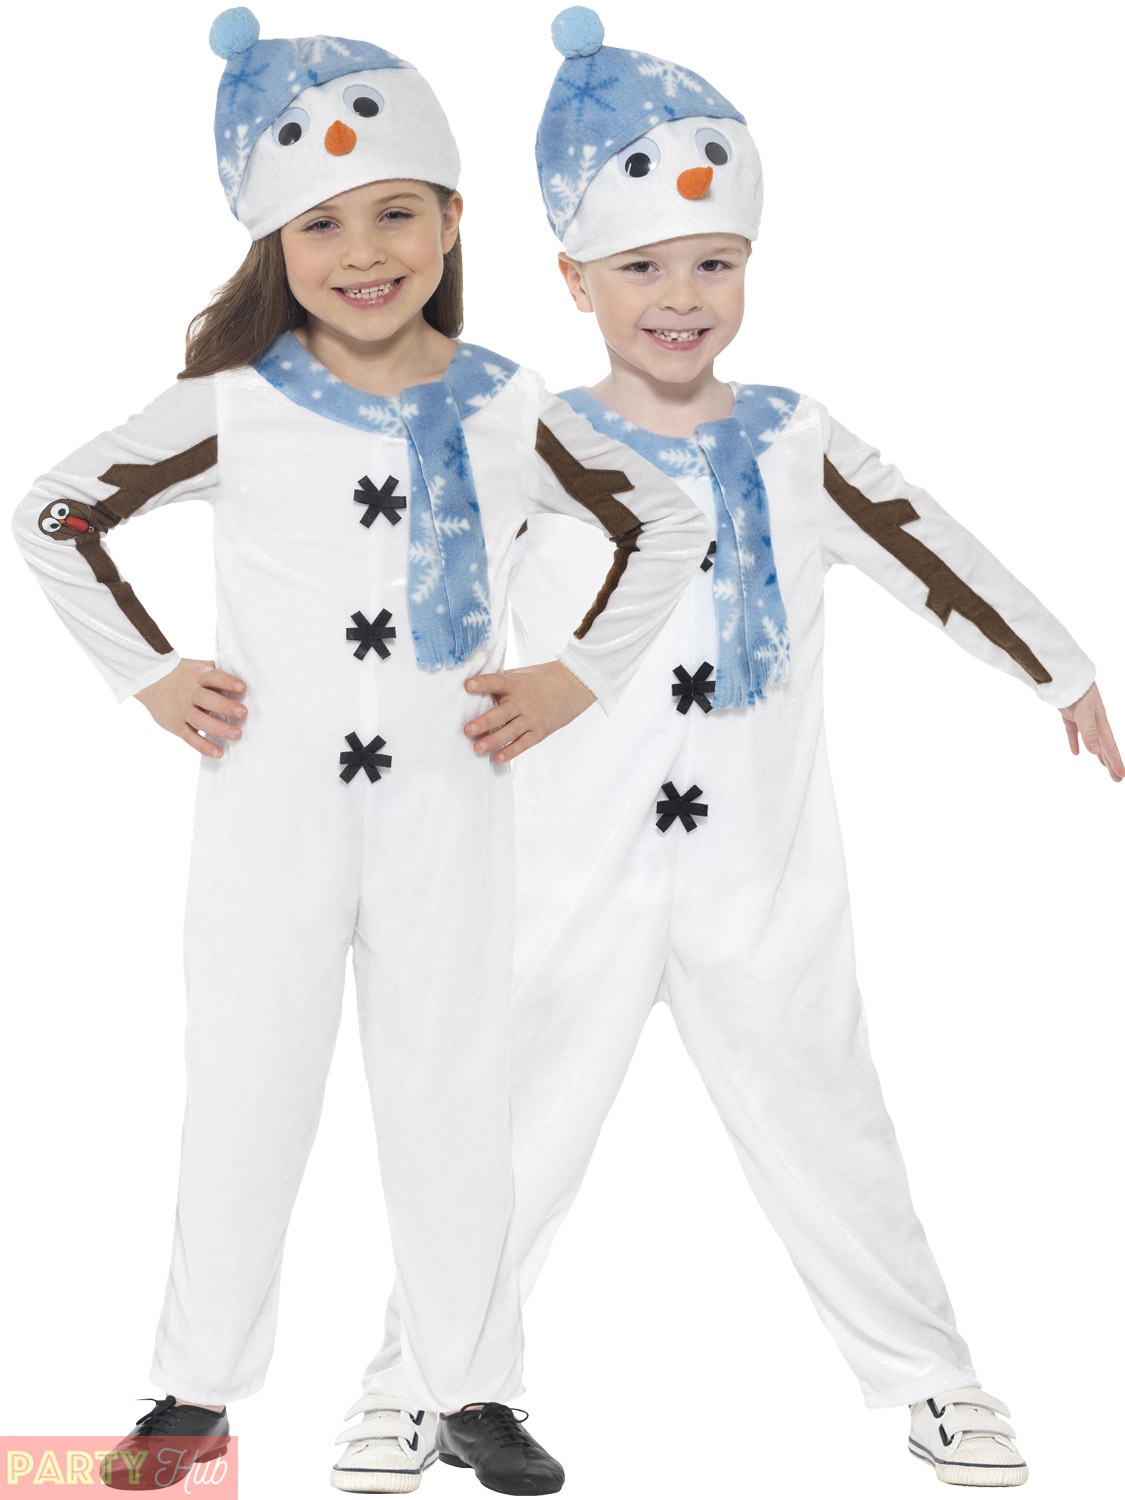 Toddler-Snowman-Costume-Boys-Girls-Christmas-Fancy-Dress-  sc 1 st  eBay & Toddler Snowman Costume Boys Girls Christmas Fancy Dress Olaf Kids ...